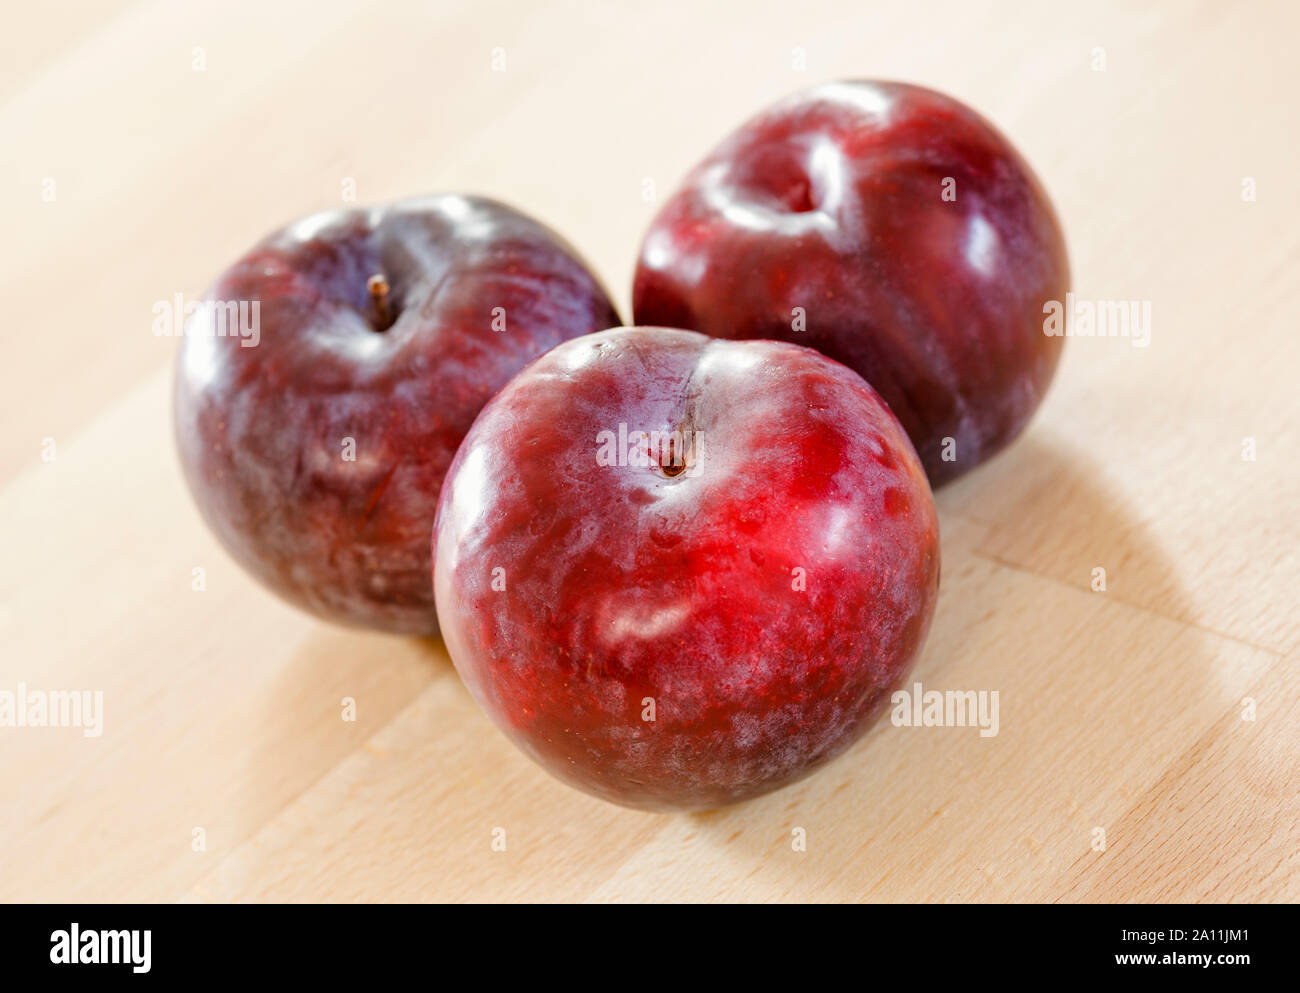 Three plums on a wooden surface Stock Photo